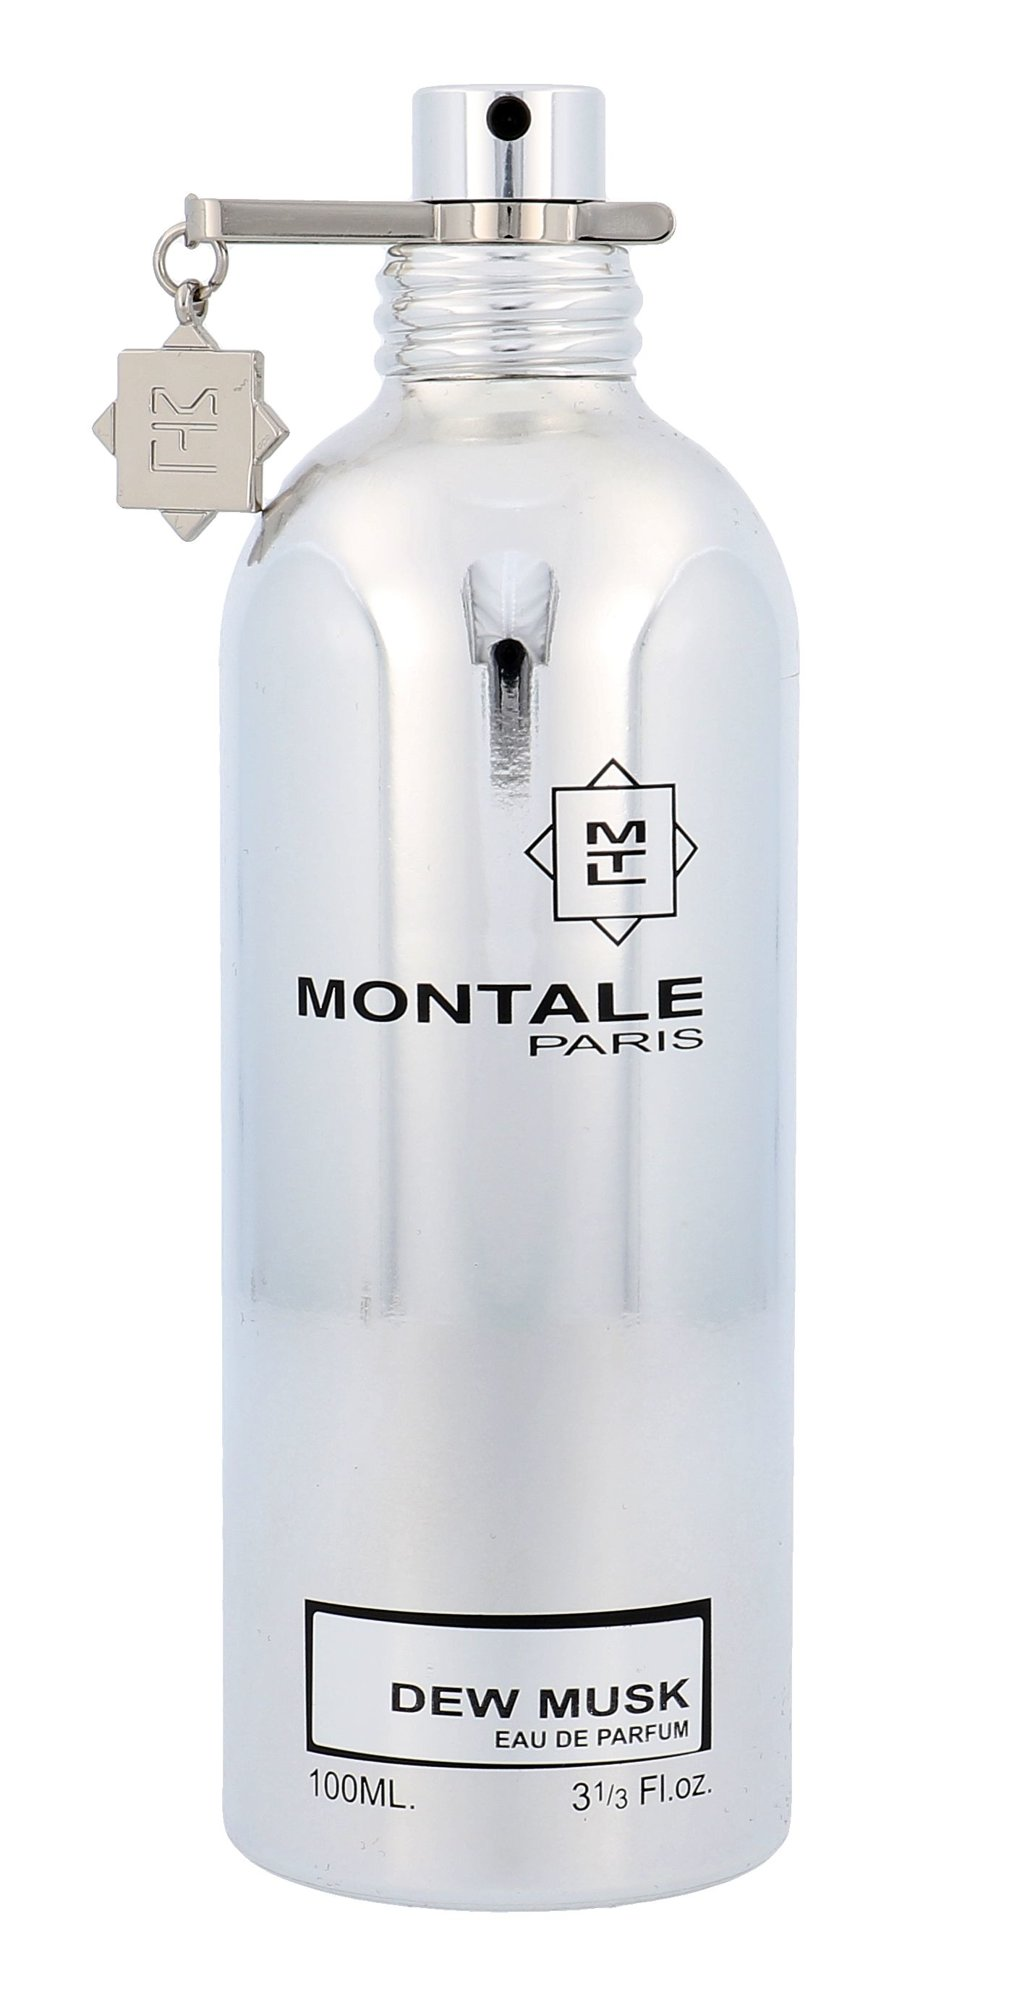 Montale Paris Dew musk EDP 100ml